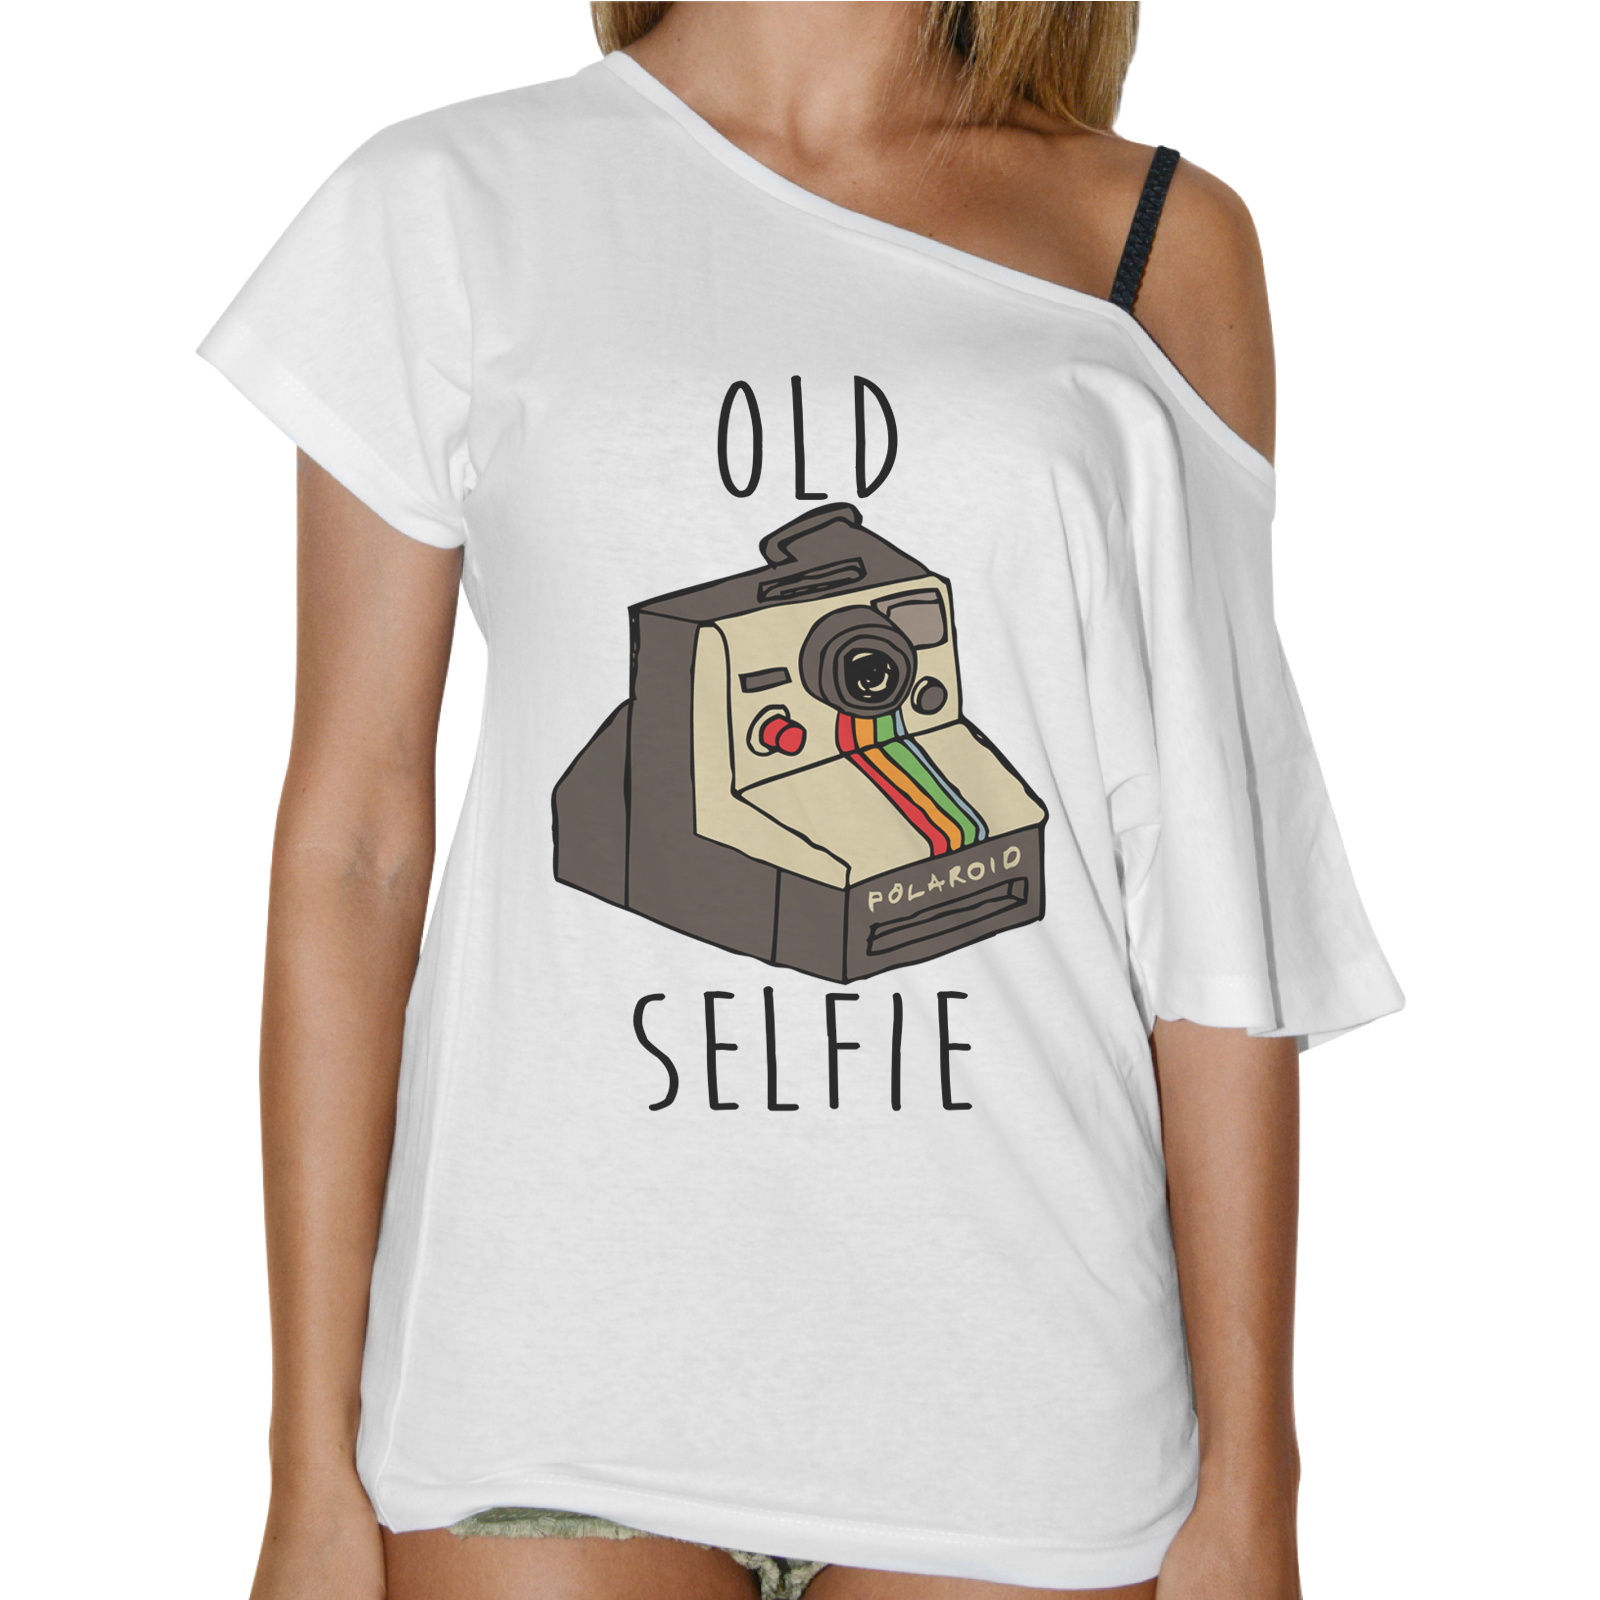 T-Shirt Donna Collo Barca OLD SELFIE